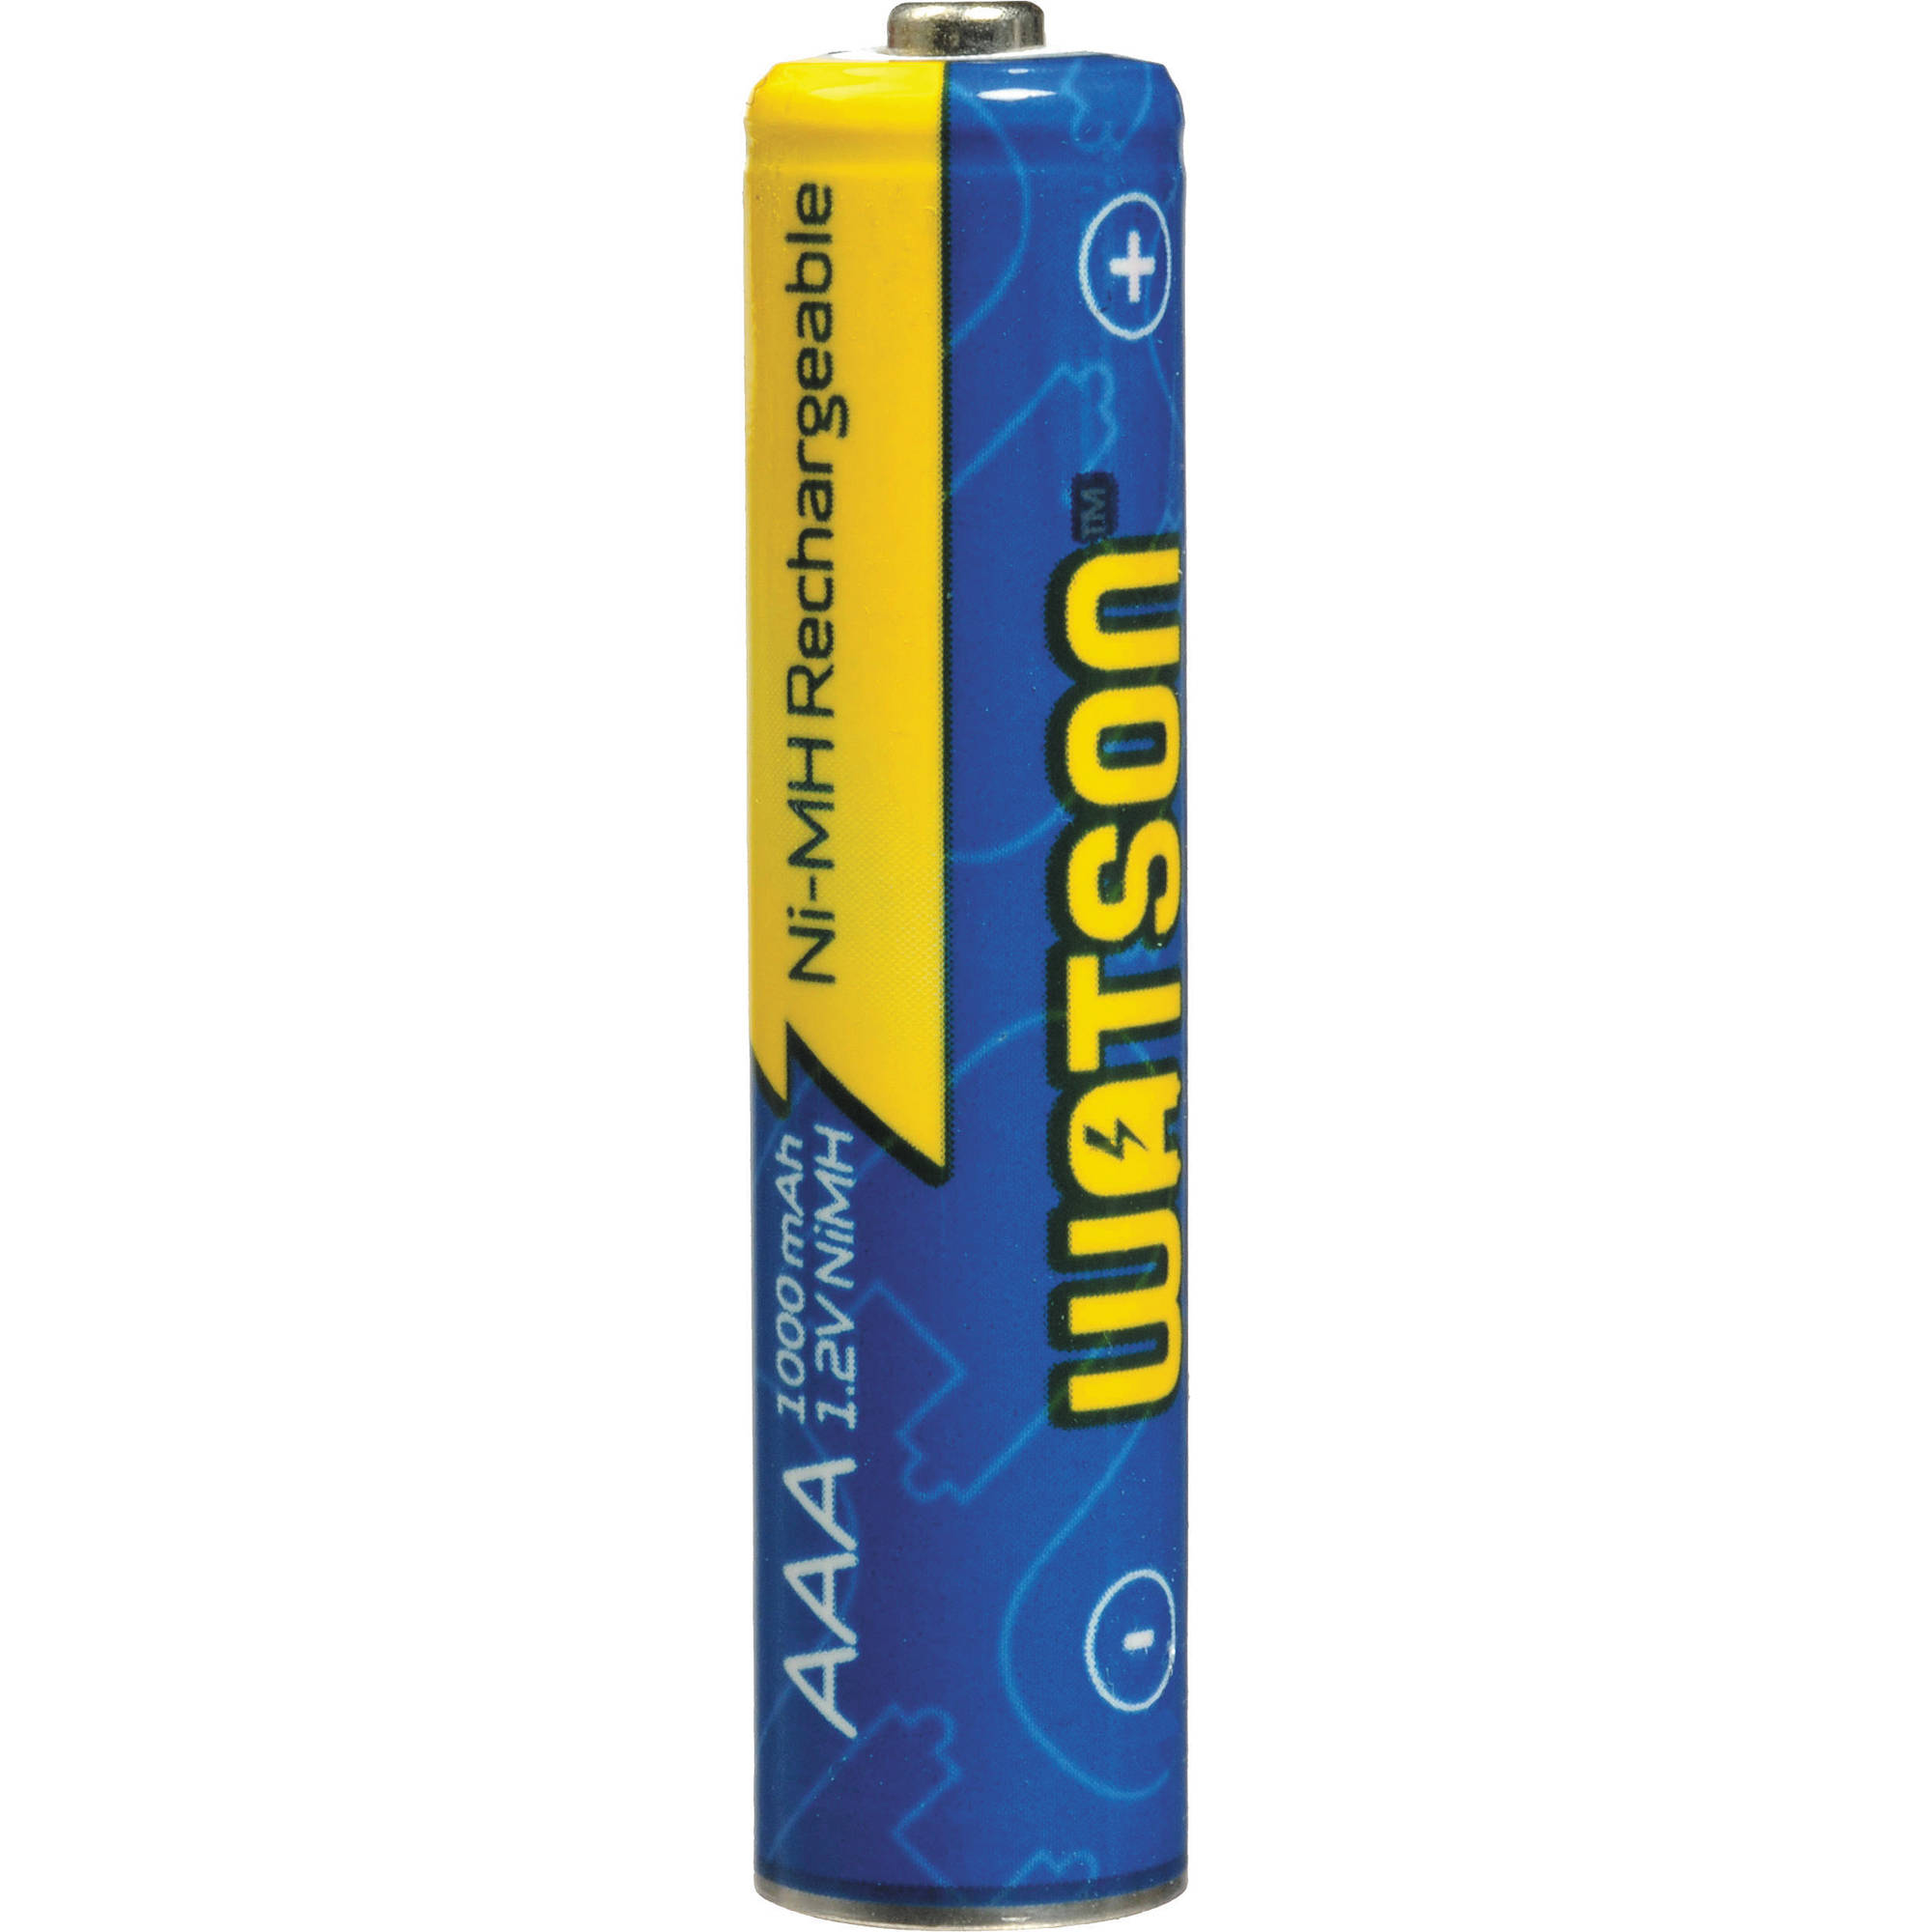 Aaa rechargeable battery pack - Difference between french